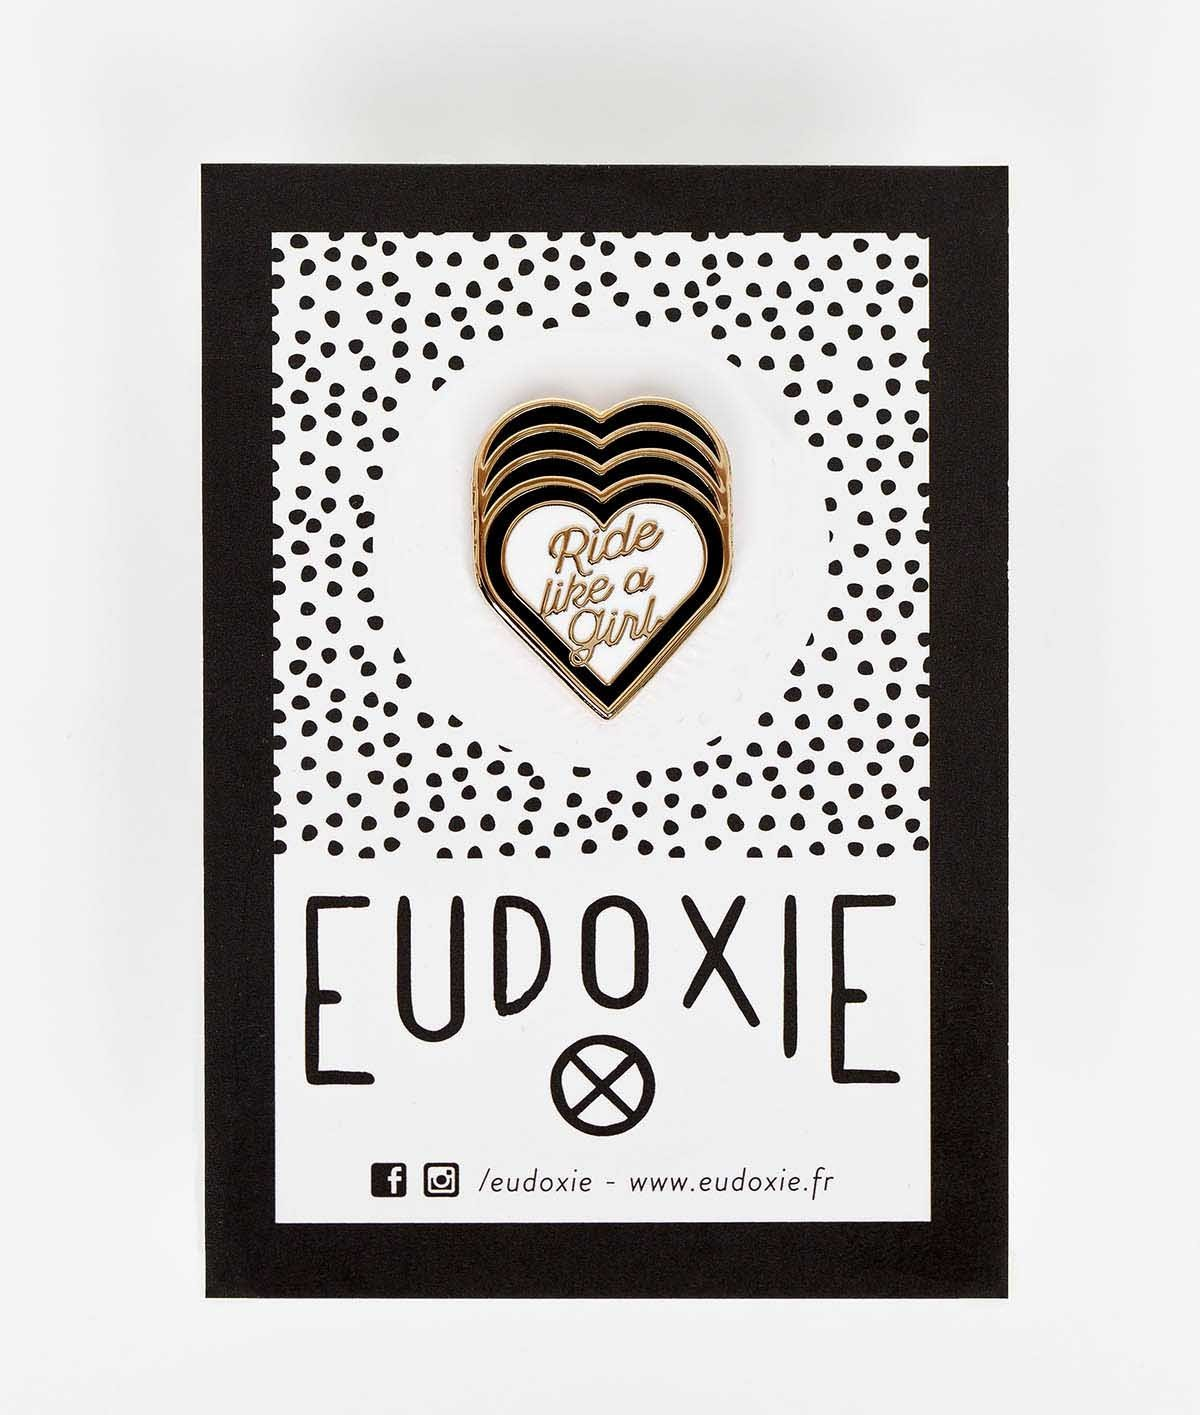 Eudoxie - Eudoxie Ride Like a Girl Black and White Pin - Accessories - Salt Flats Clothing